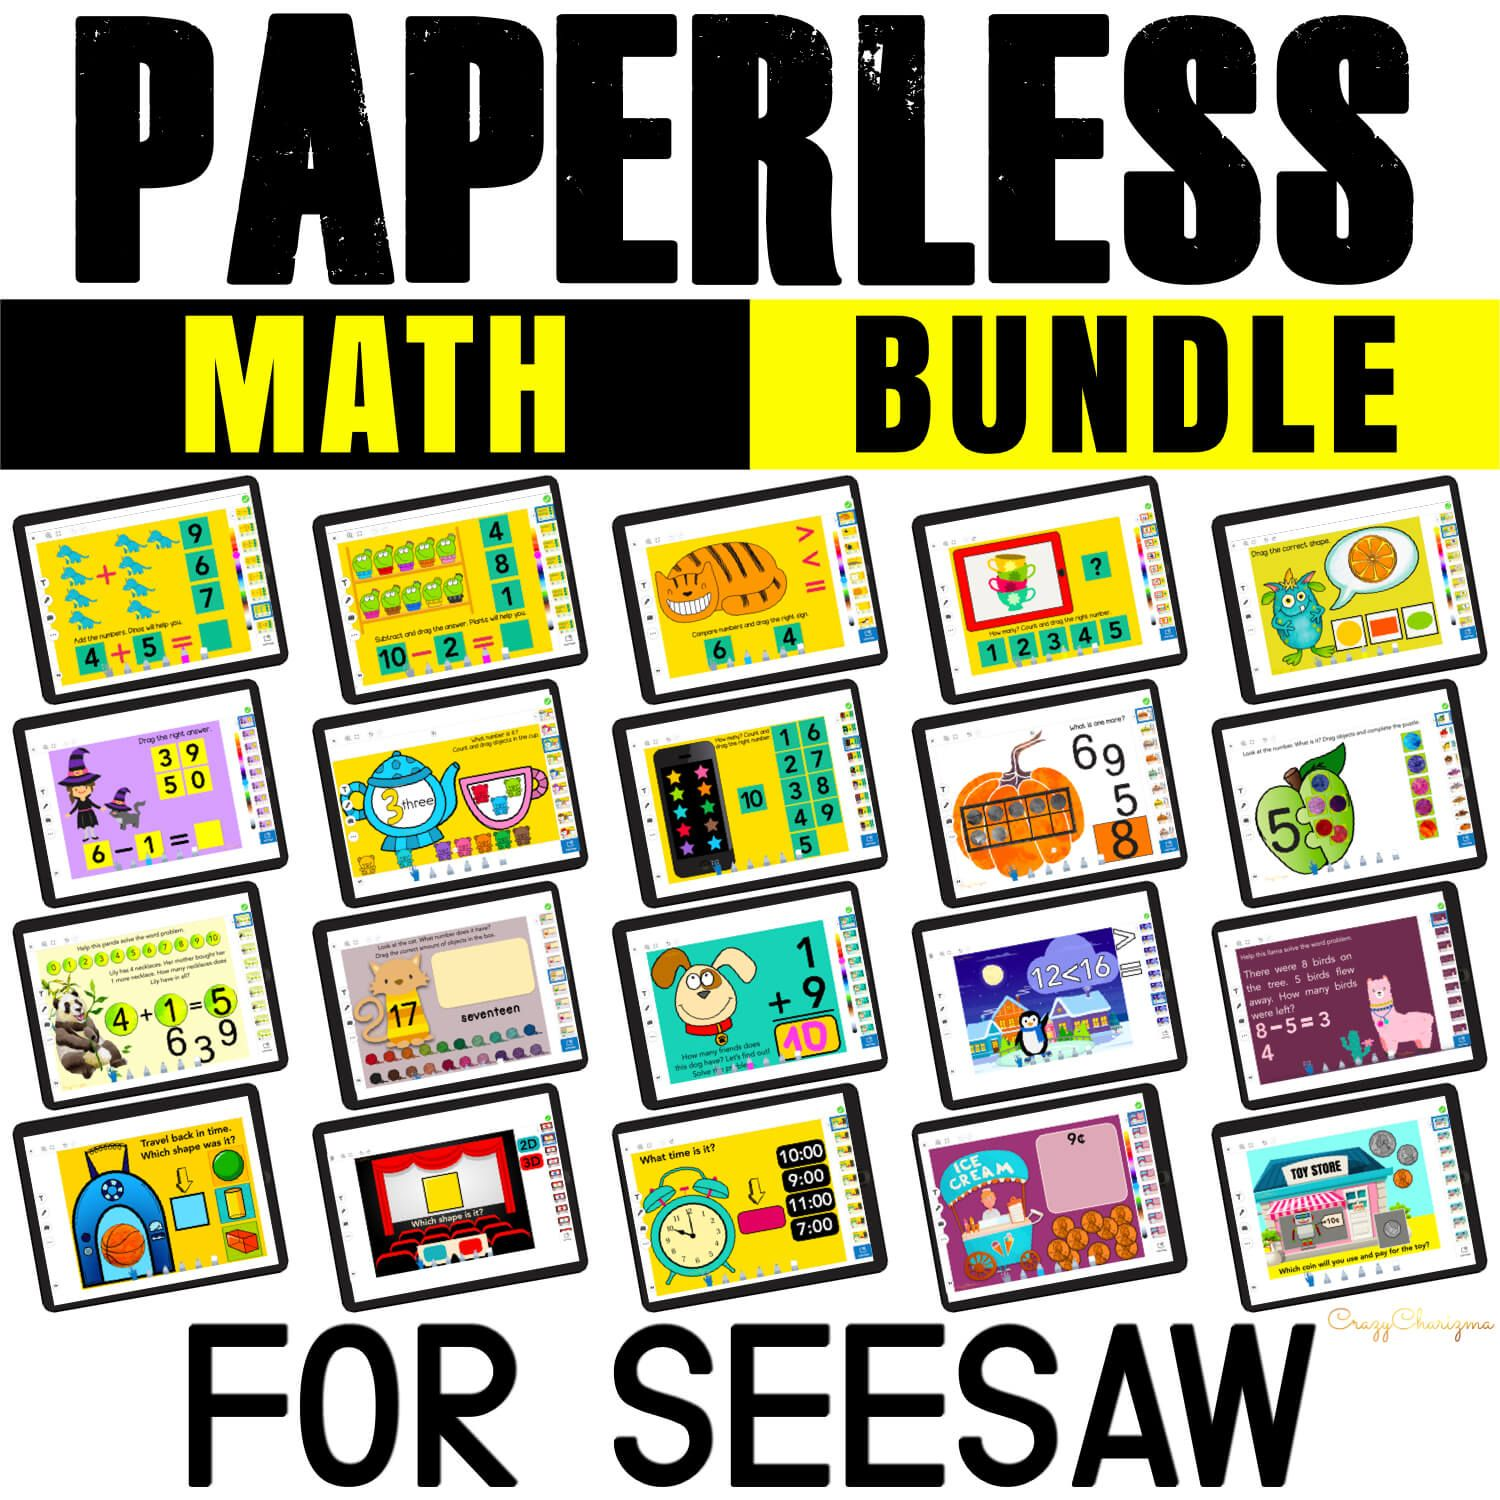 MATH GAMES FOR SEESAW